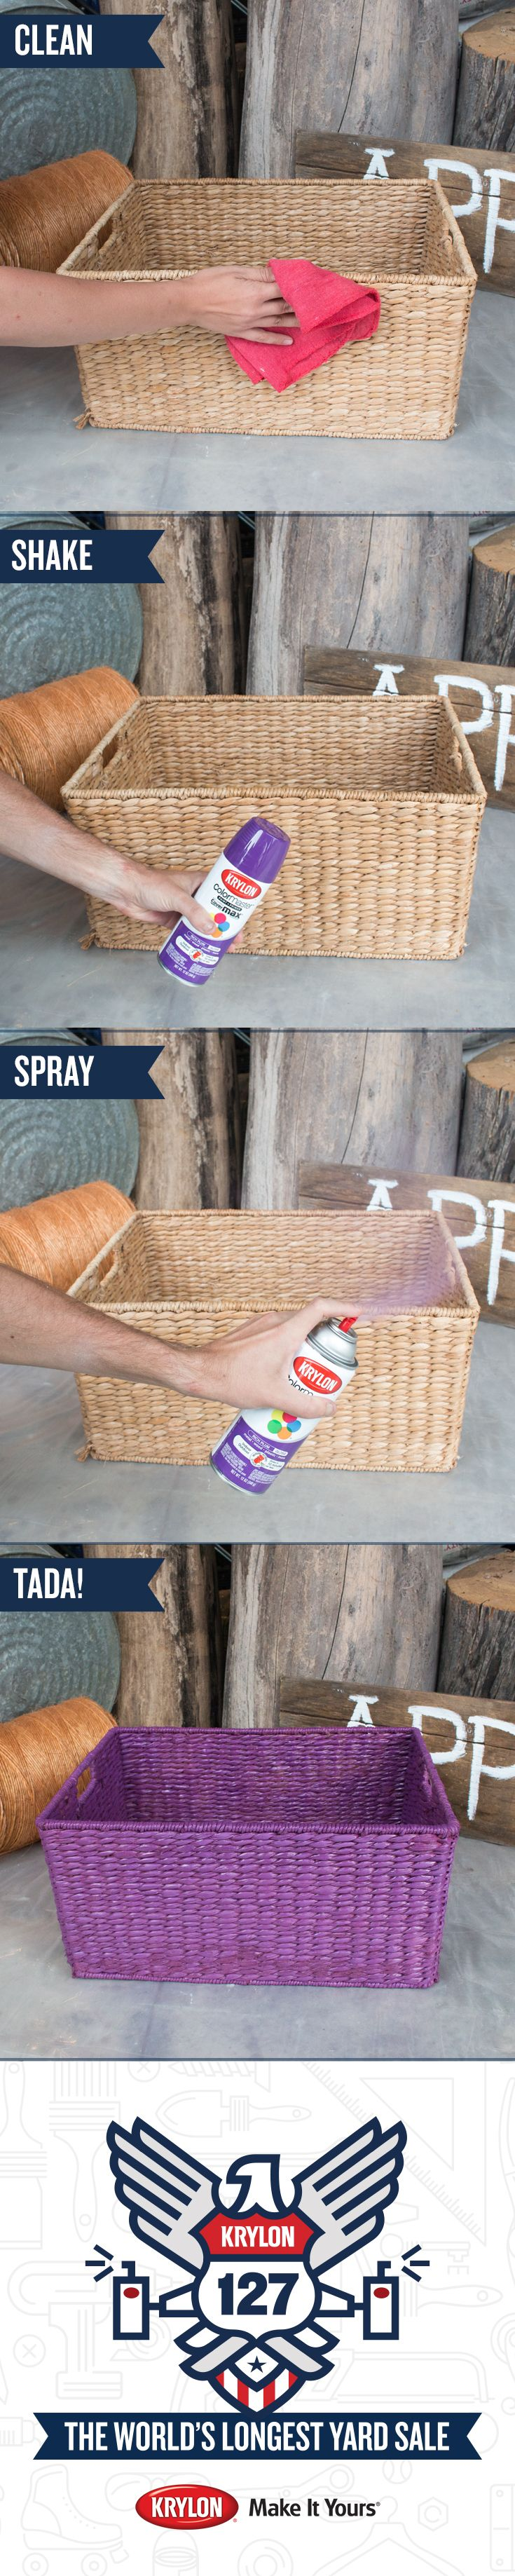 Want to give an old basket a fresh new look? We found this basket at the #Krylon127YardSale and gave it a makeover with Krylon ColorMaster Paint + Primer Rich Plum. Follow these easy steps to re-do your own basket. 1) Clean the surface 2) Shake the spray can vigorously 3) Paint the basket, using light, even coats. Voila! See all the objects we transformed at the first ever Pinterest Yard Sale. Buy your favorites. All proceeds will be donated to Charity Wings, an arts education non-profit.